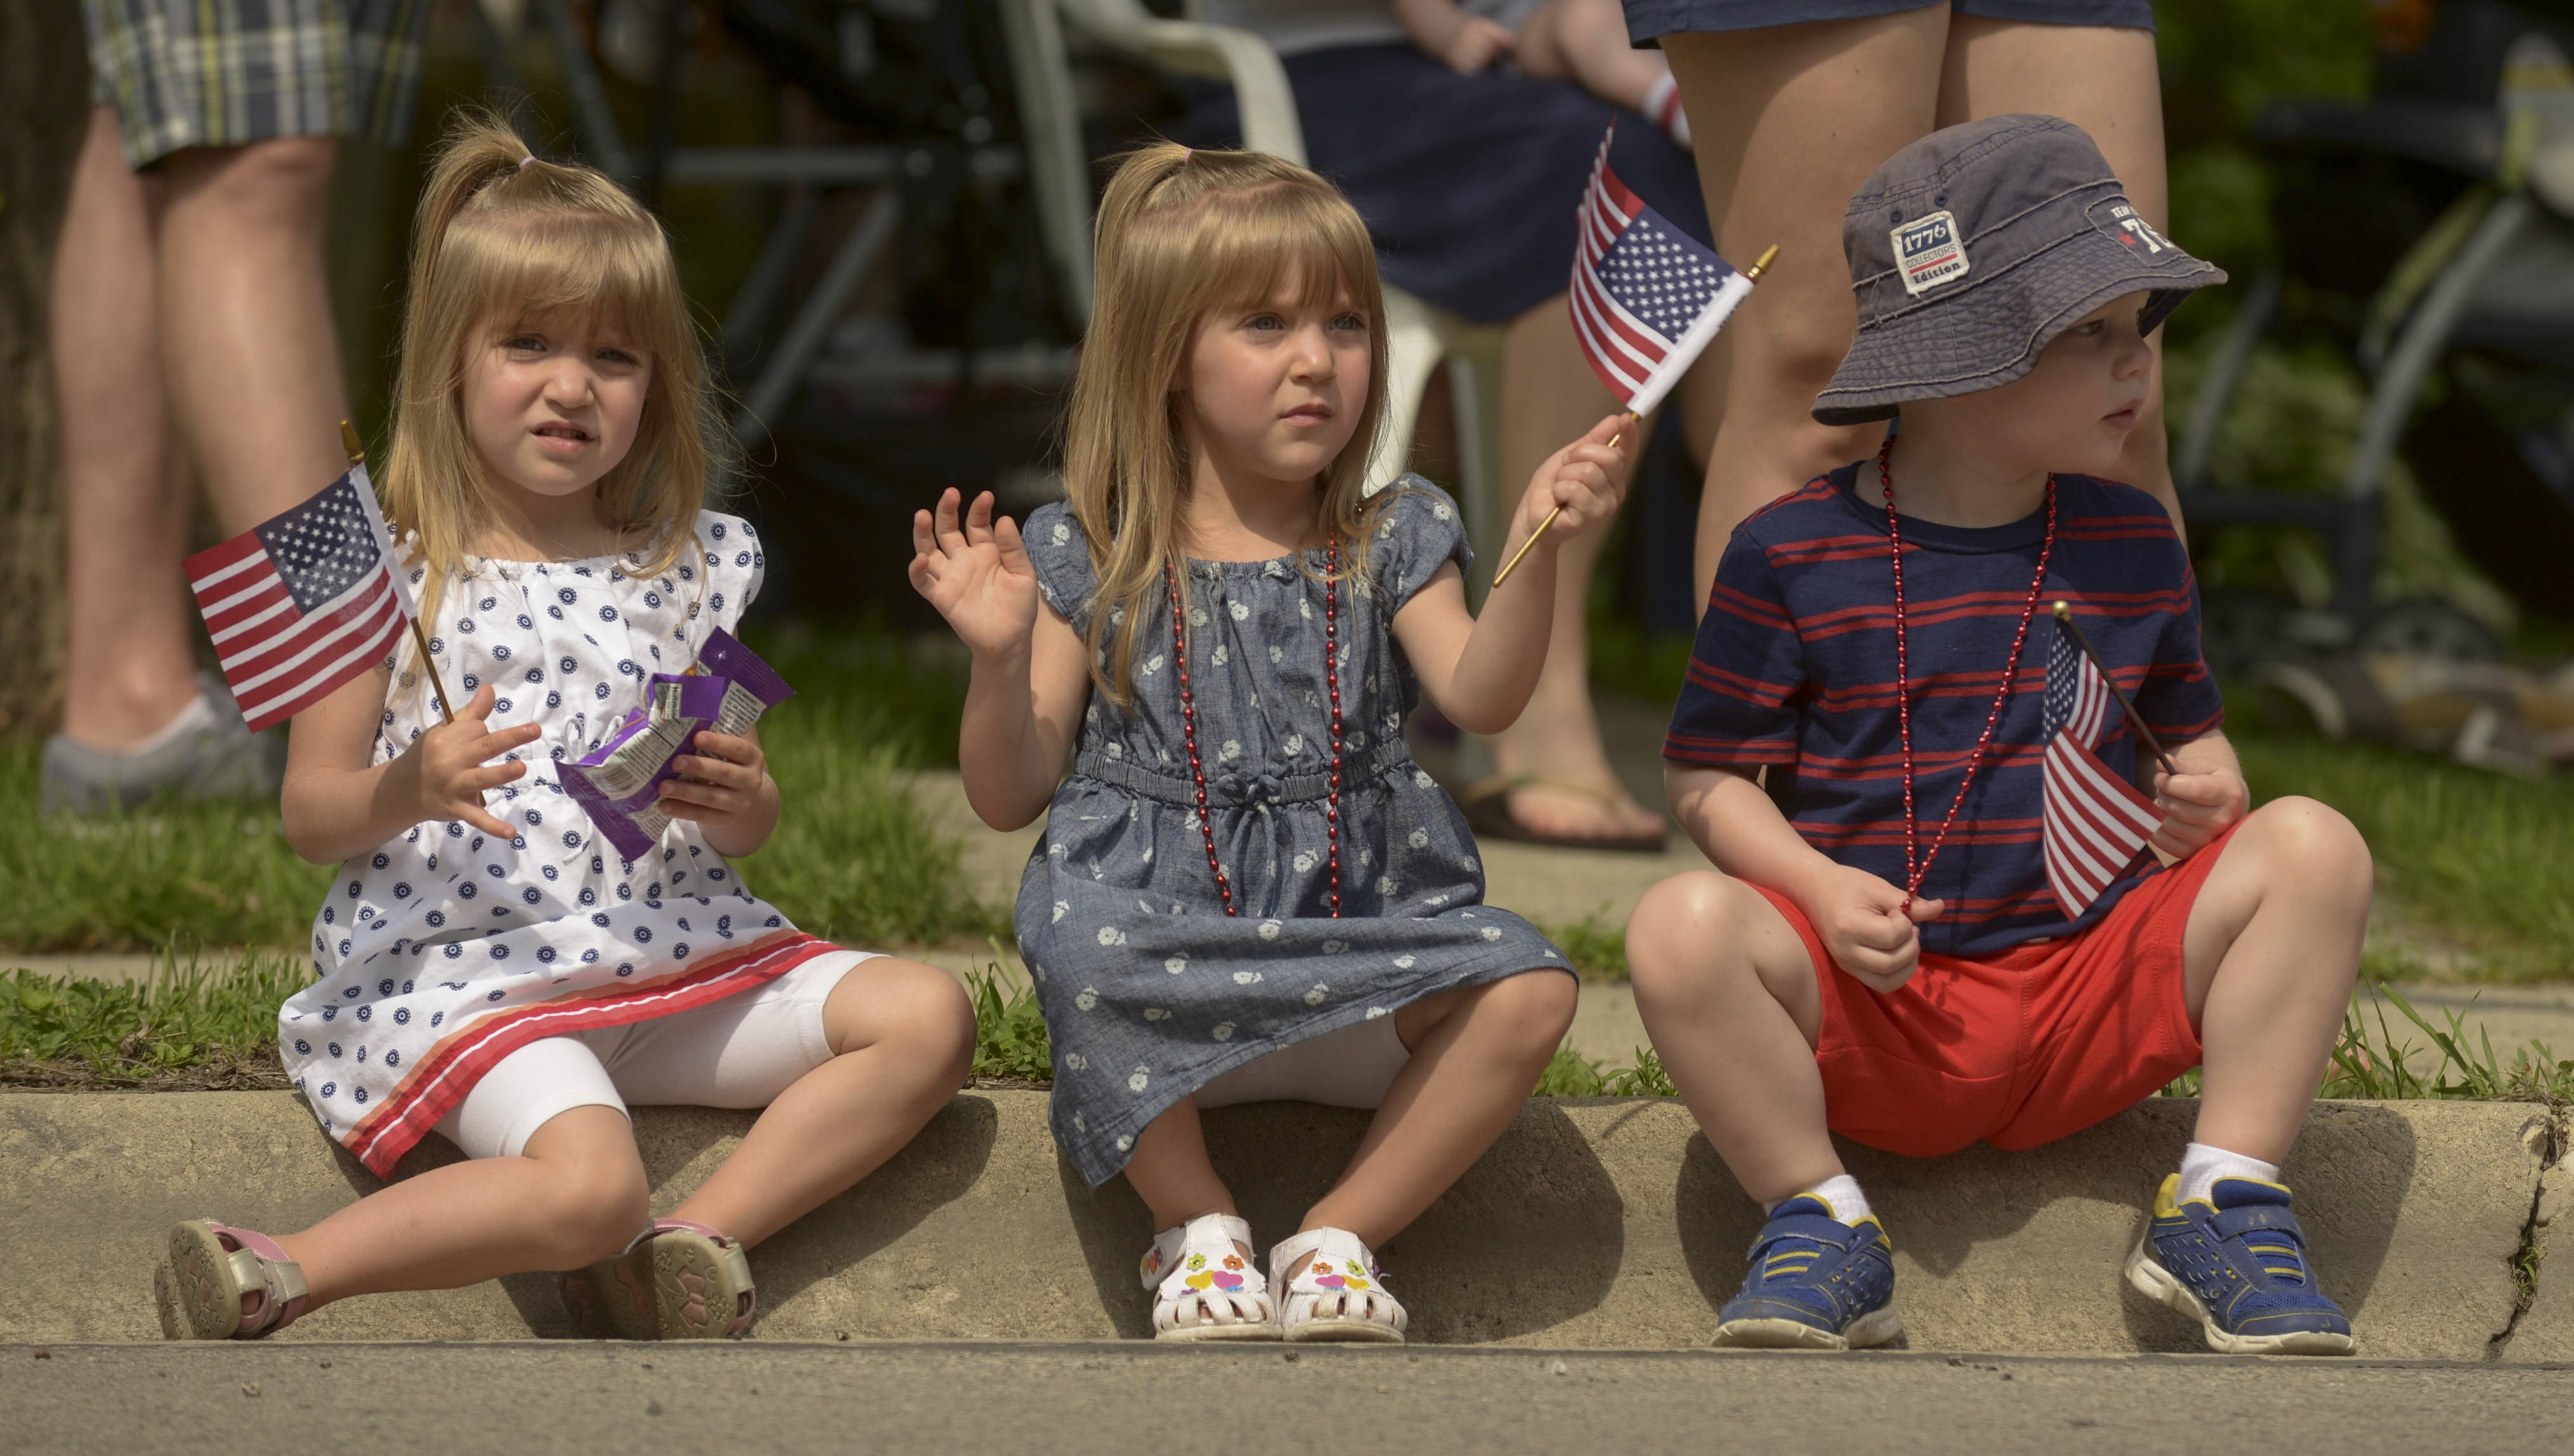 Olivia and Avery Pecak, 3 of Lisle along with Graem Wiegand, 3 of Wheaton waves their American flags during the Wheaton's Memorial Day parade.